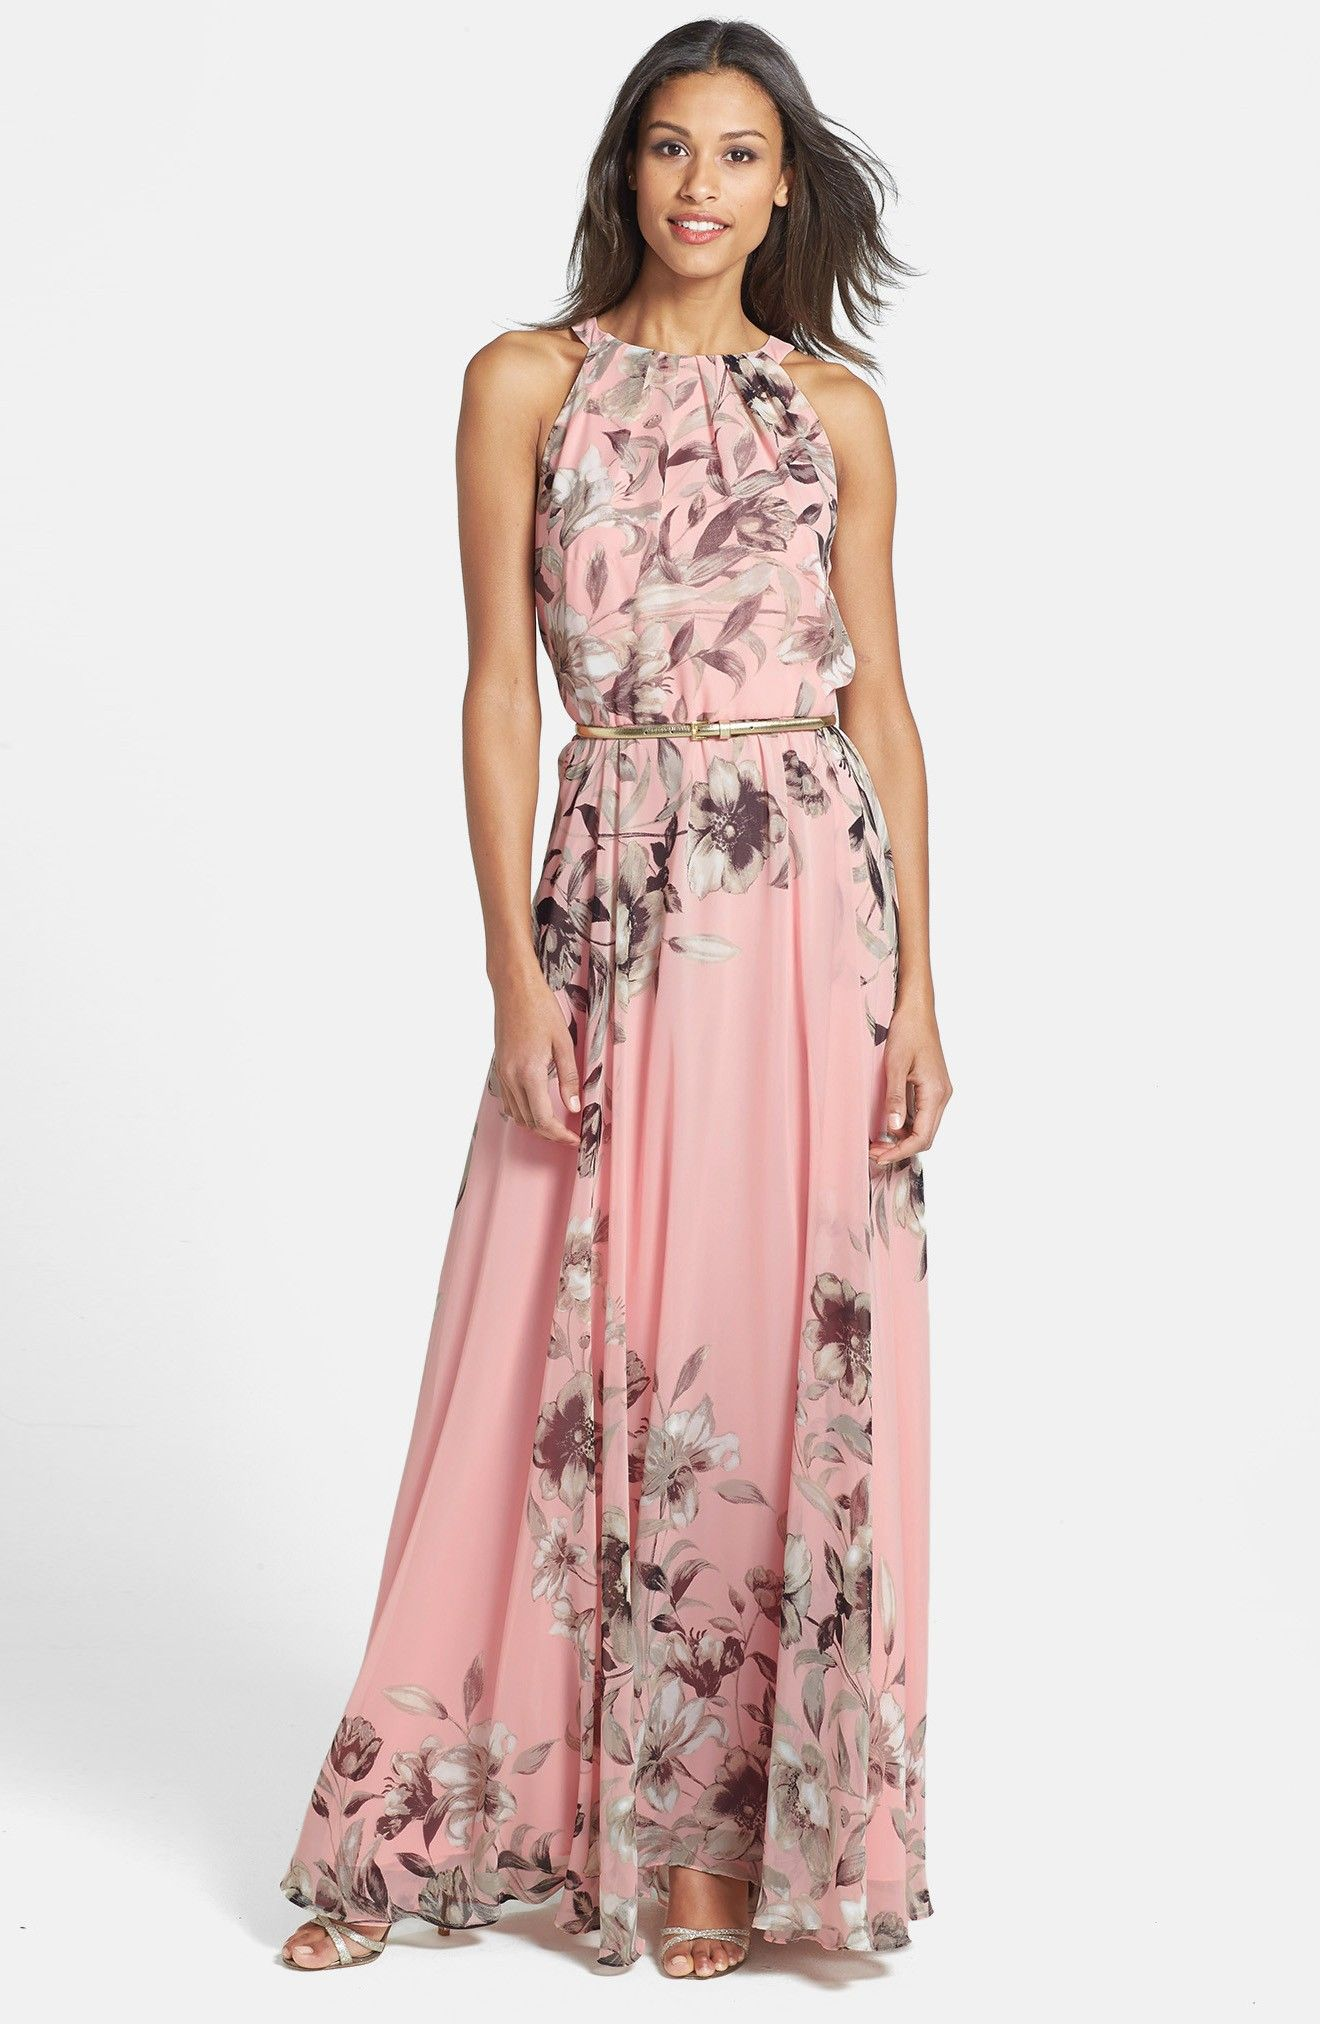 Long dress nordstrom king color dress pinterest classy prom